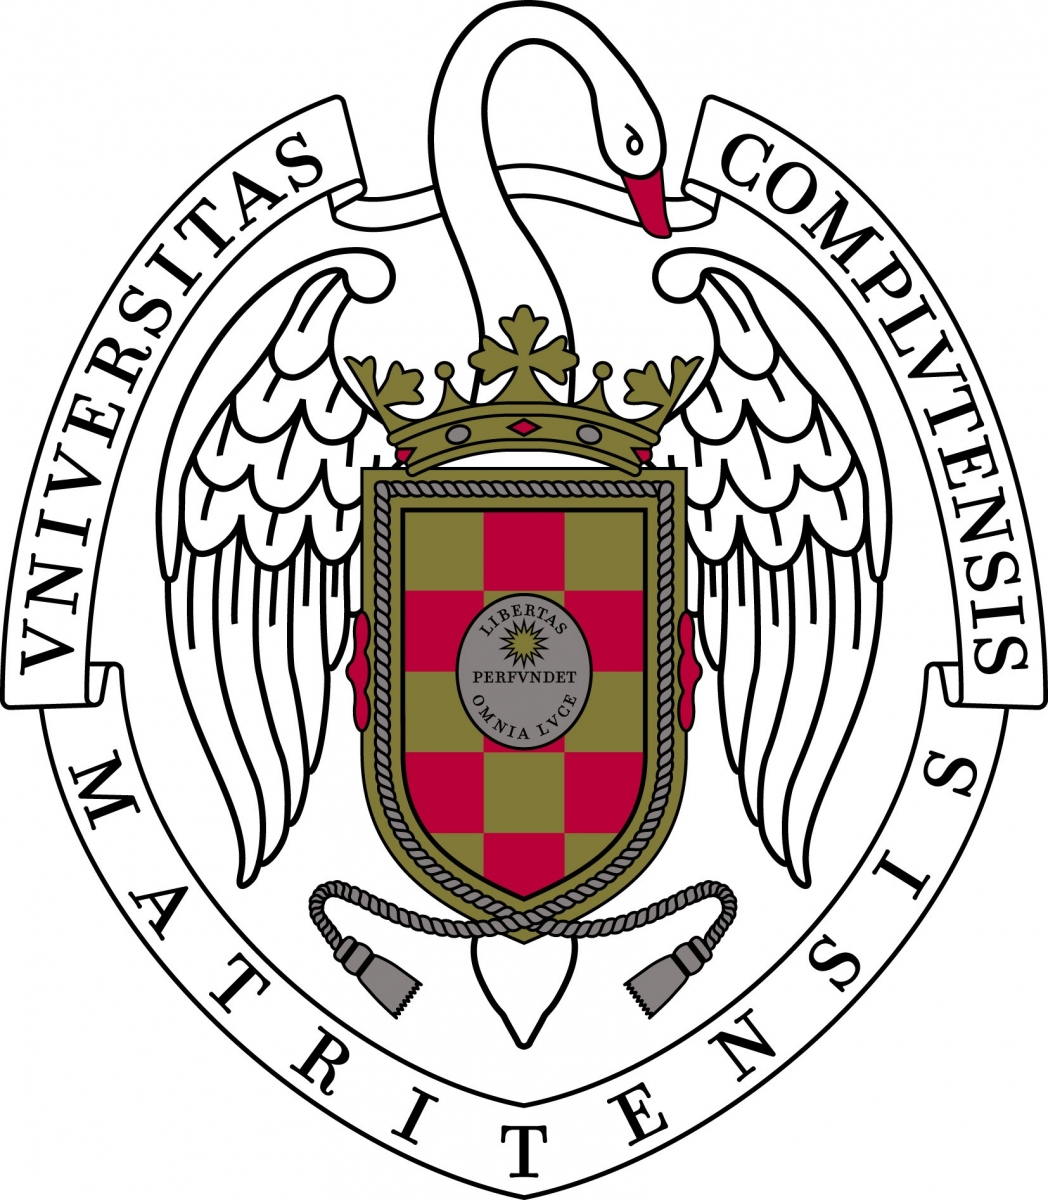 Universidad-Complutense-de-Madrid_